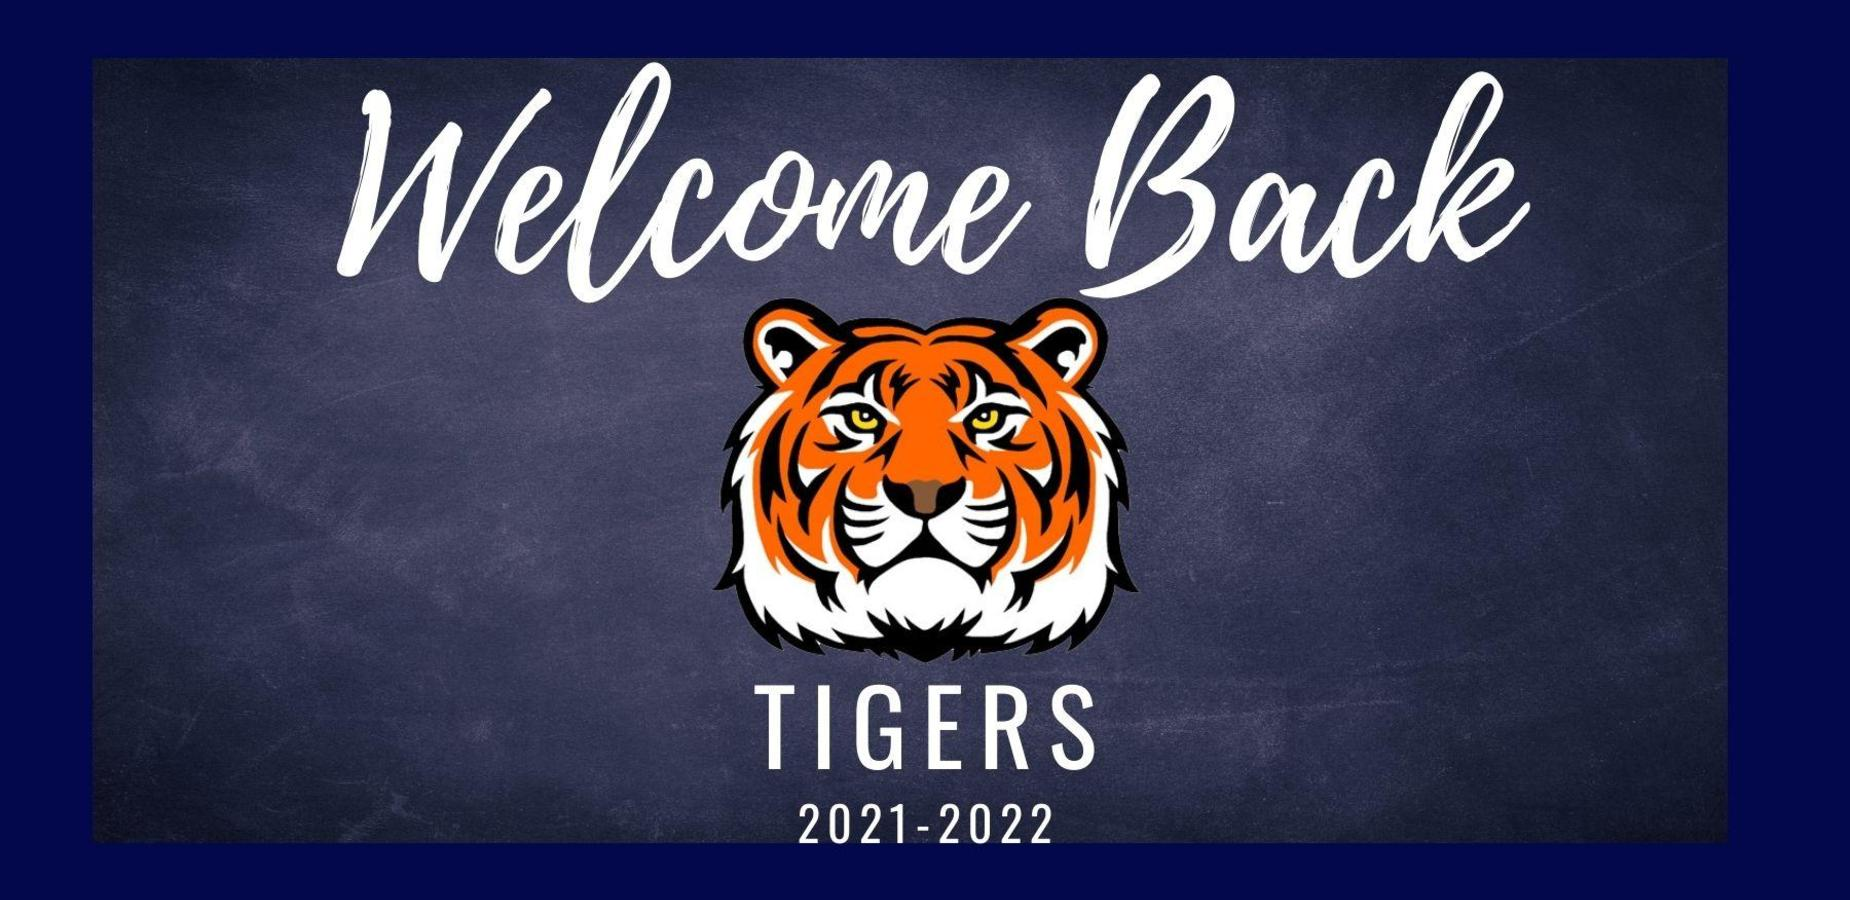 Welcome Back. A tiger head in the middle of the page. Tigers 2021- 2022